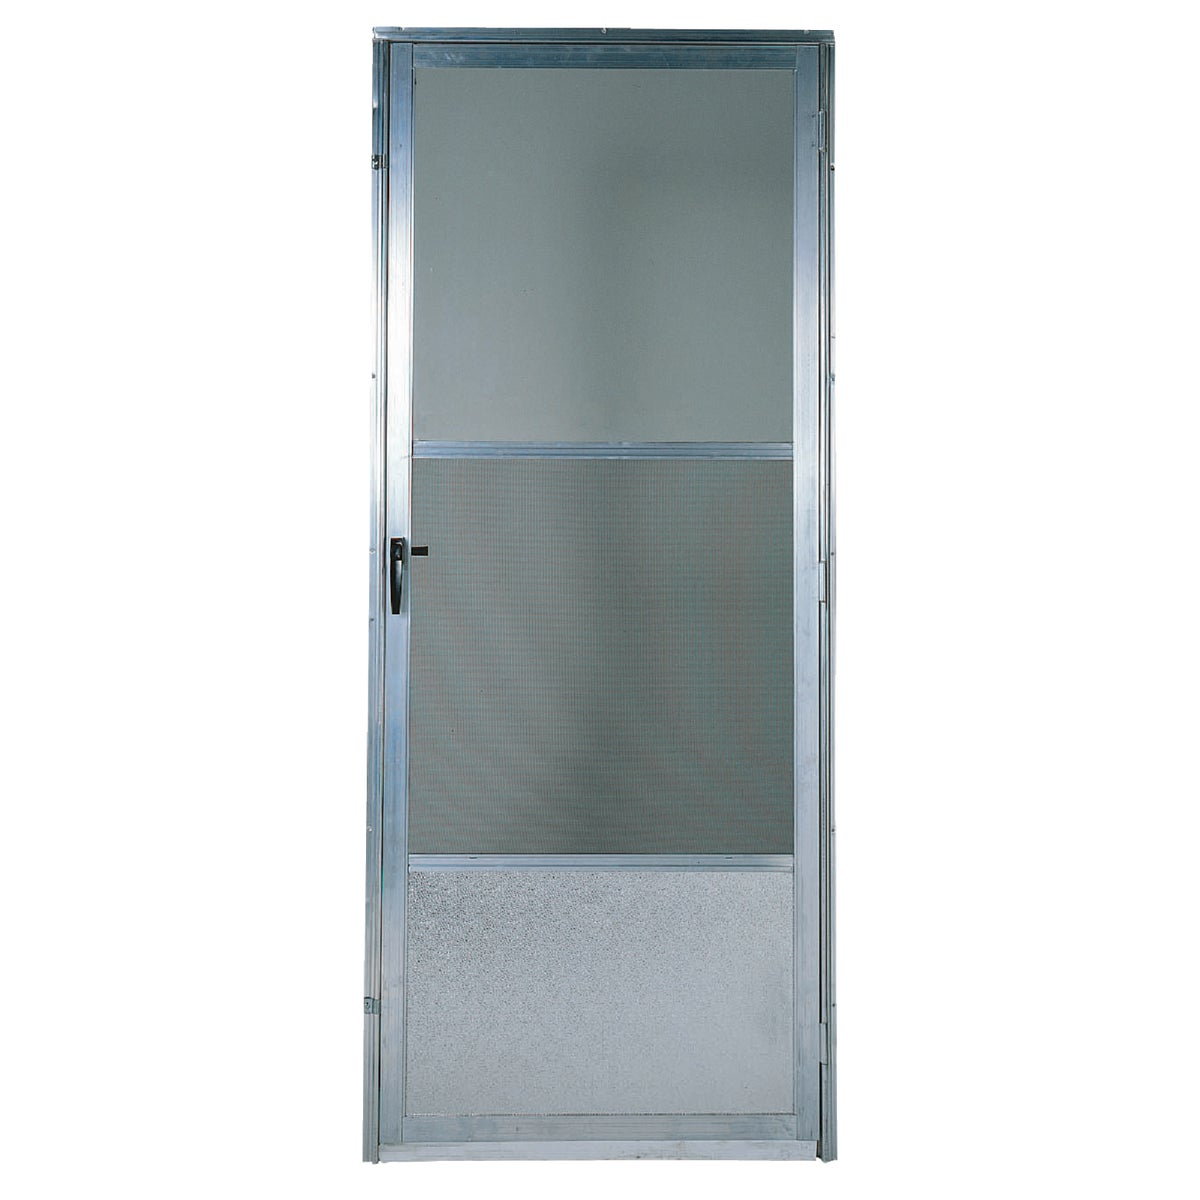 161 2868 RH MILL DOOR - F05745 by Croft Llc